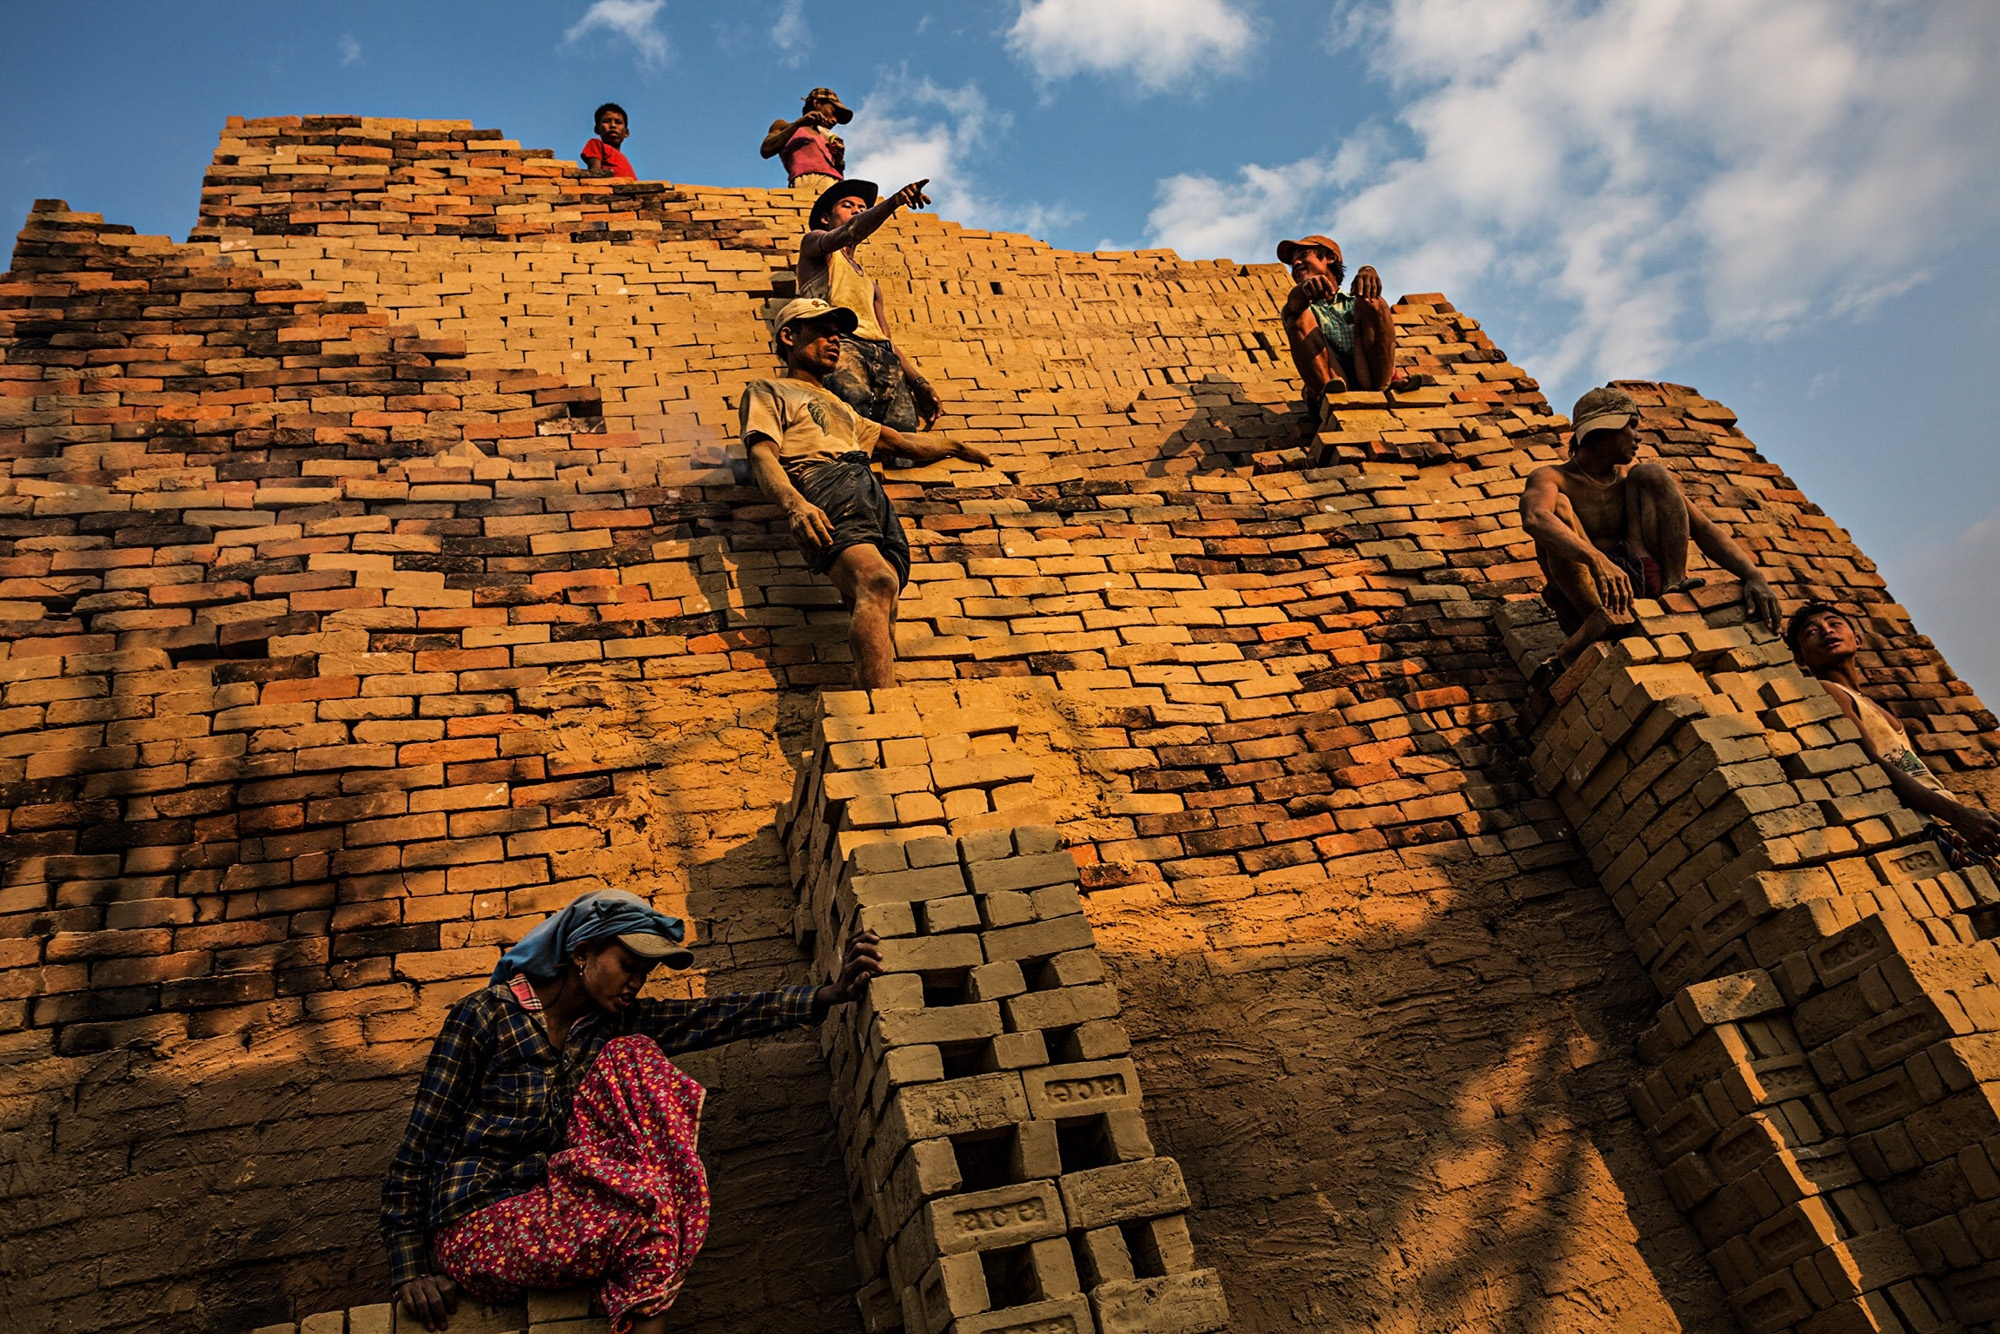 Brick factory workers stand on the side of a kiln, passing bricks to the top. The kilns can reach heights of twenty-five feet and those who opt to work higher up can earn a very small extra sum.